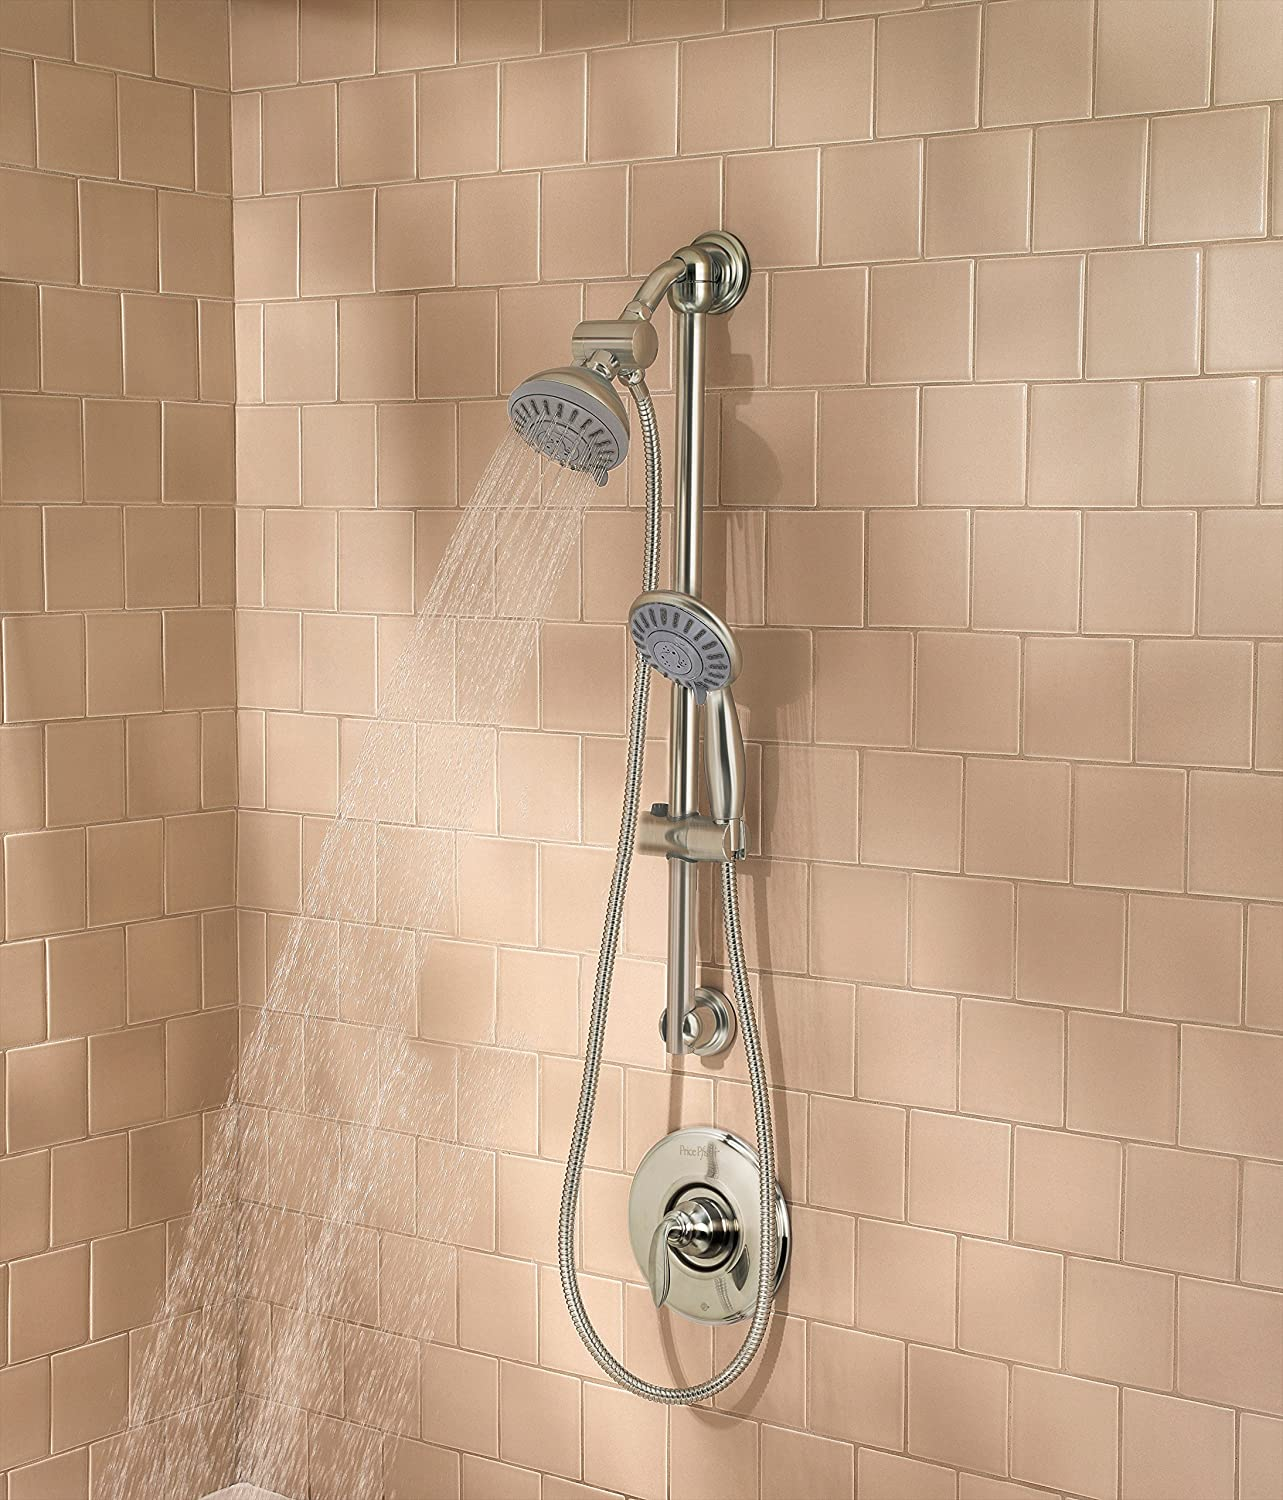 Comfortable Pfister Shower Pictures Inspiration - Bathtub for ...